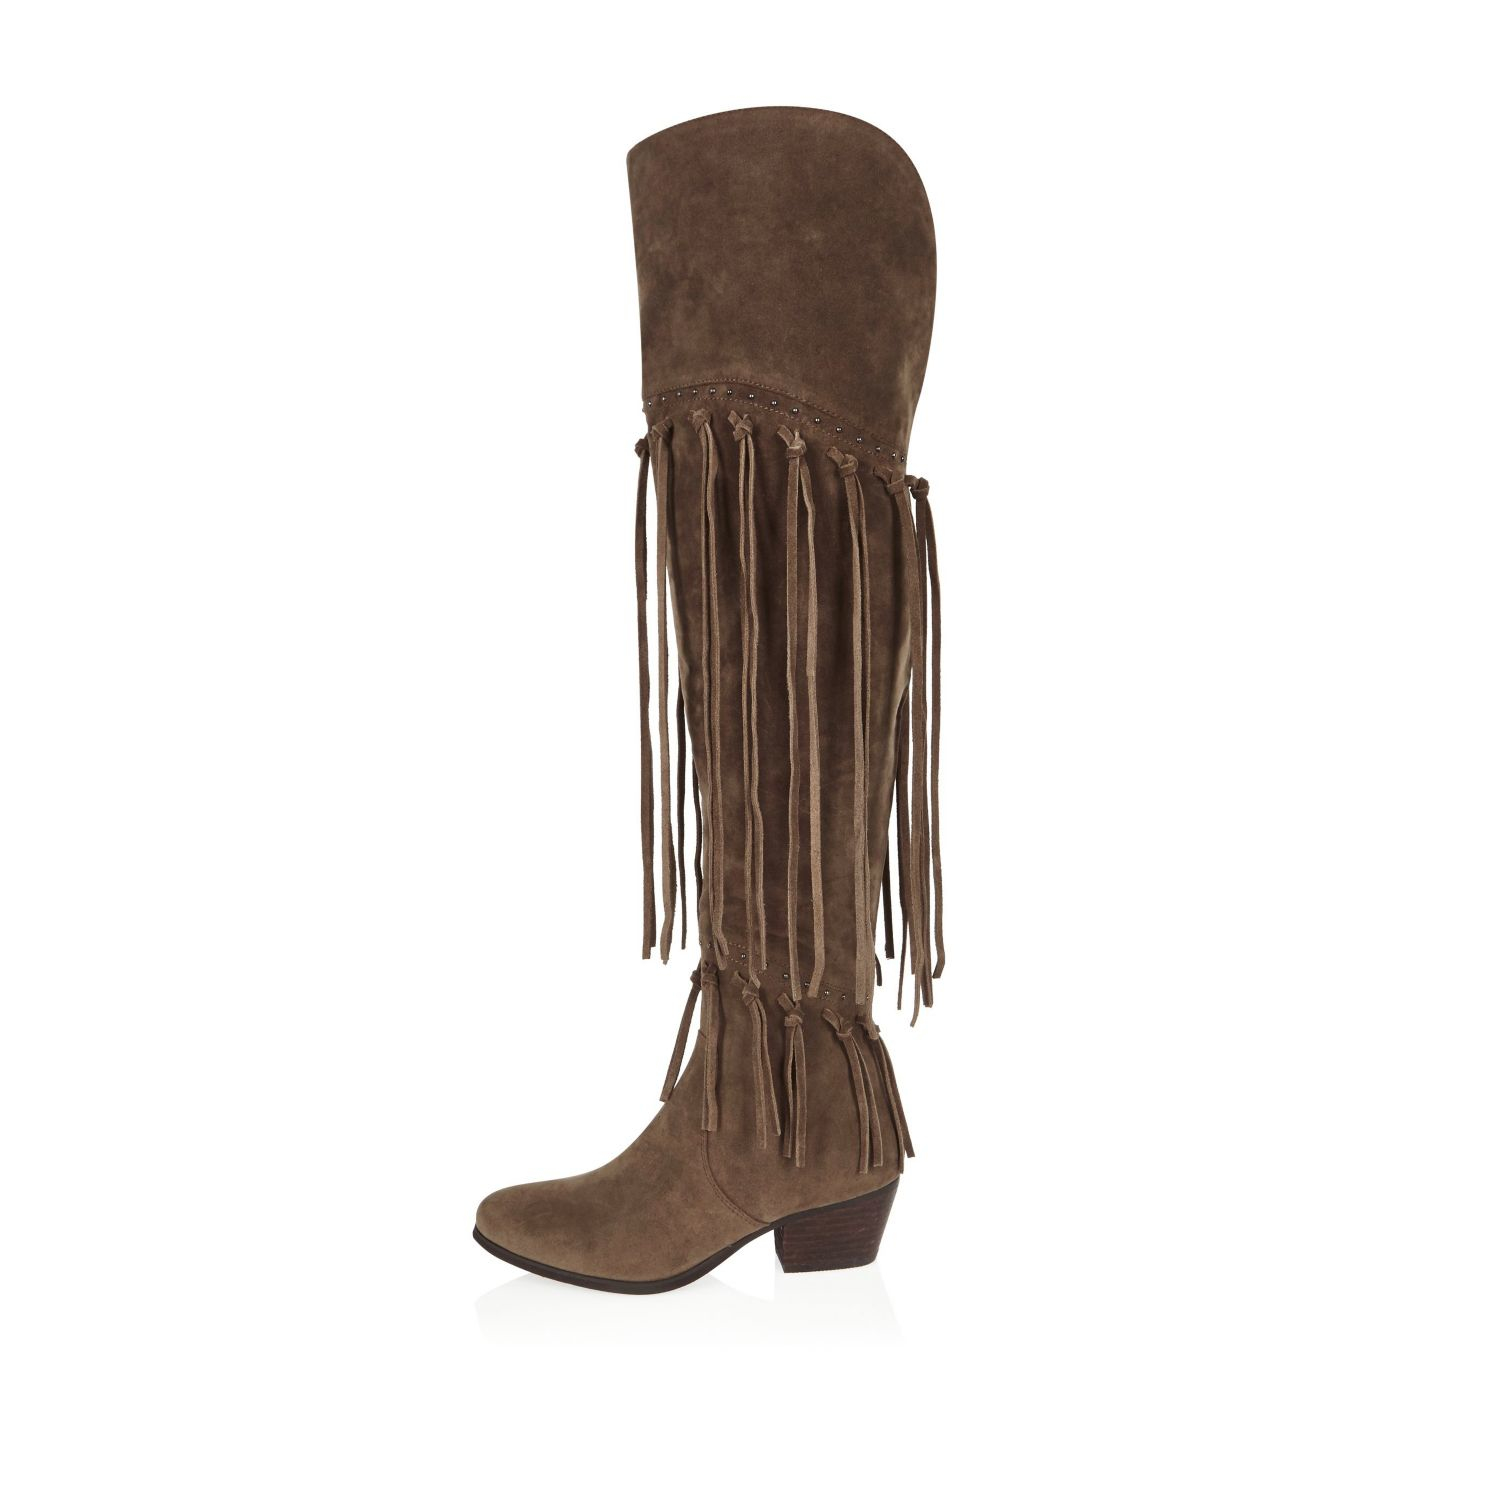 Over The Knee Fringe Boots nhmKMEEr